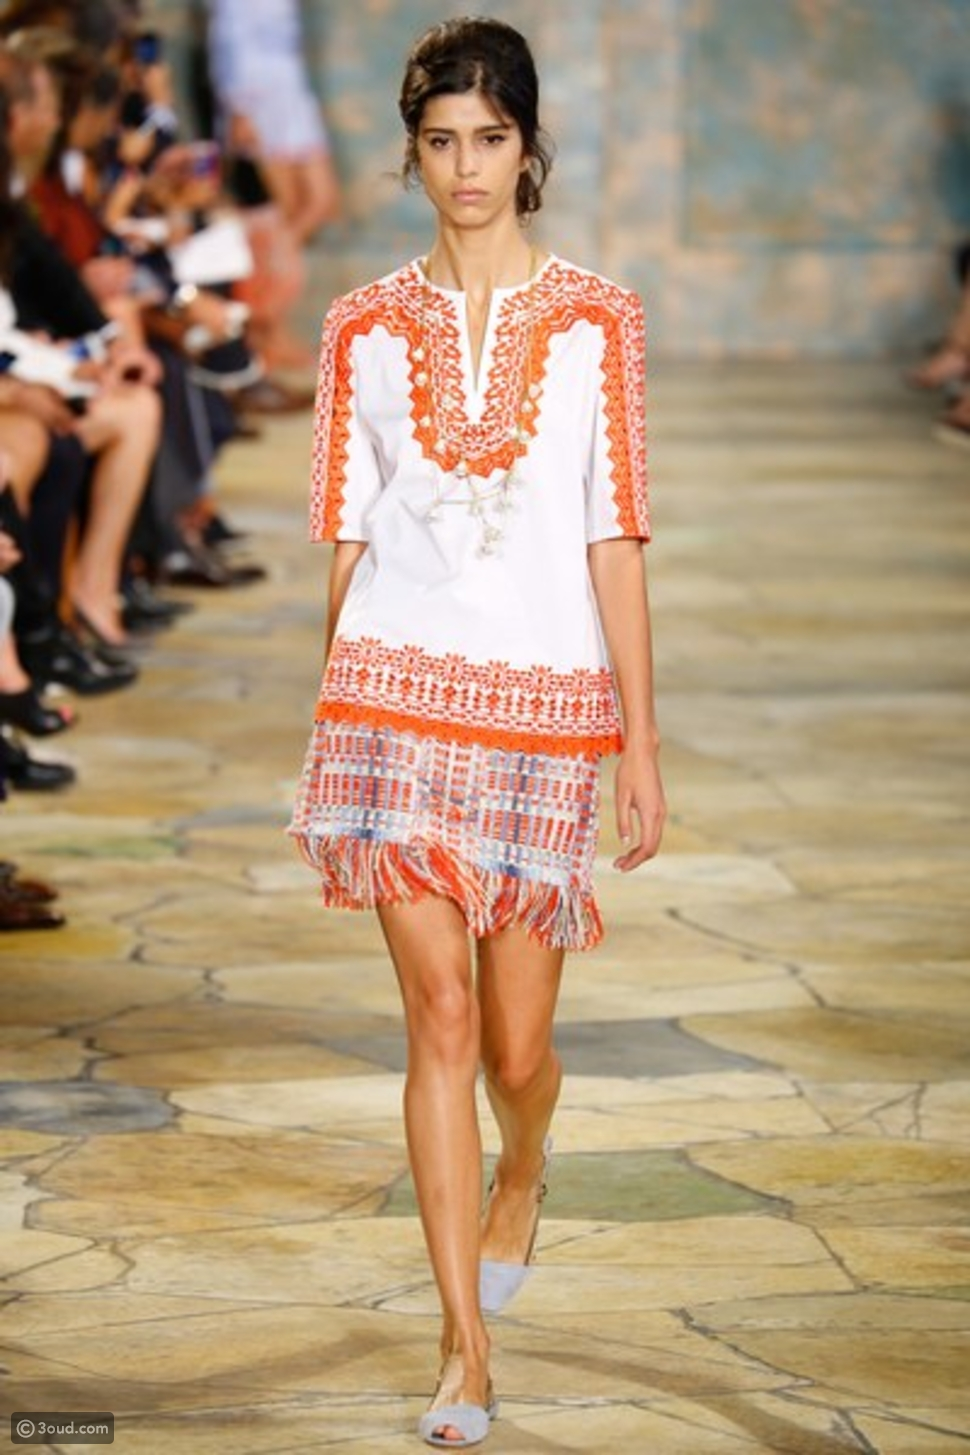 3oud Editor's Picks from Tory Burch SS16 (أروع فساتين توري بيرش لربيع صيف 2016)